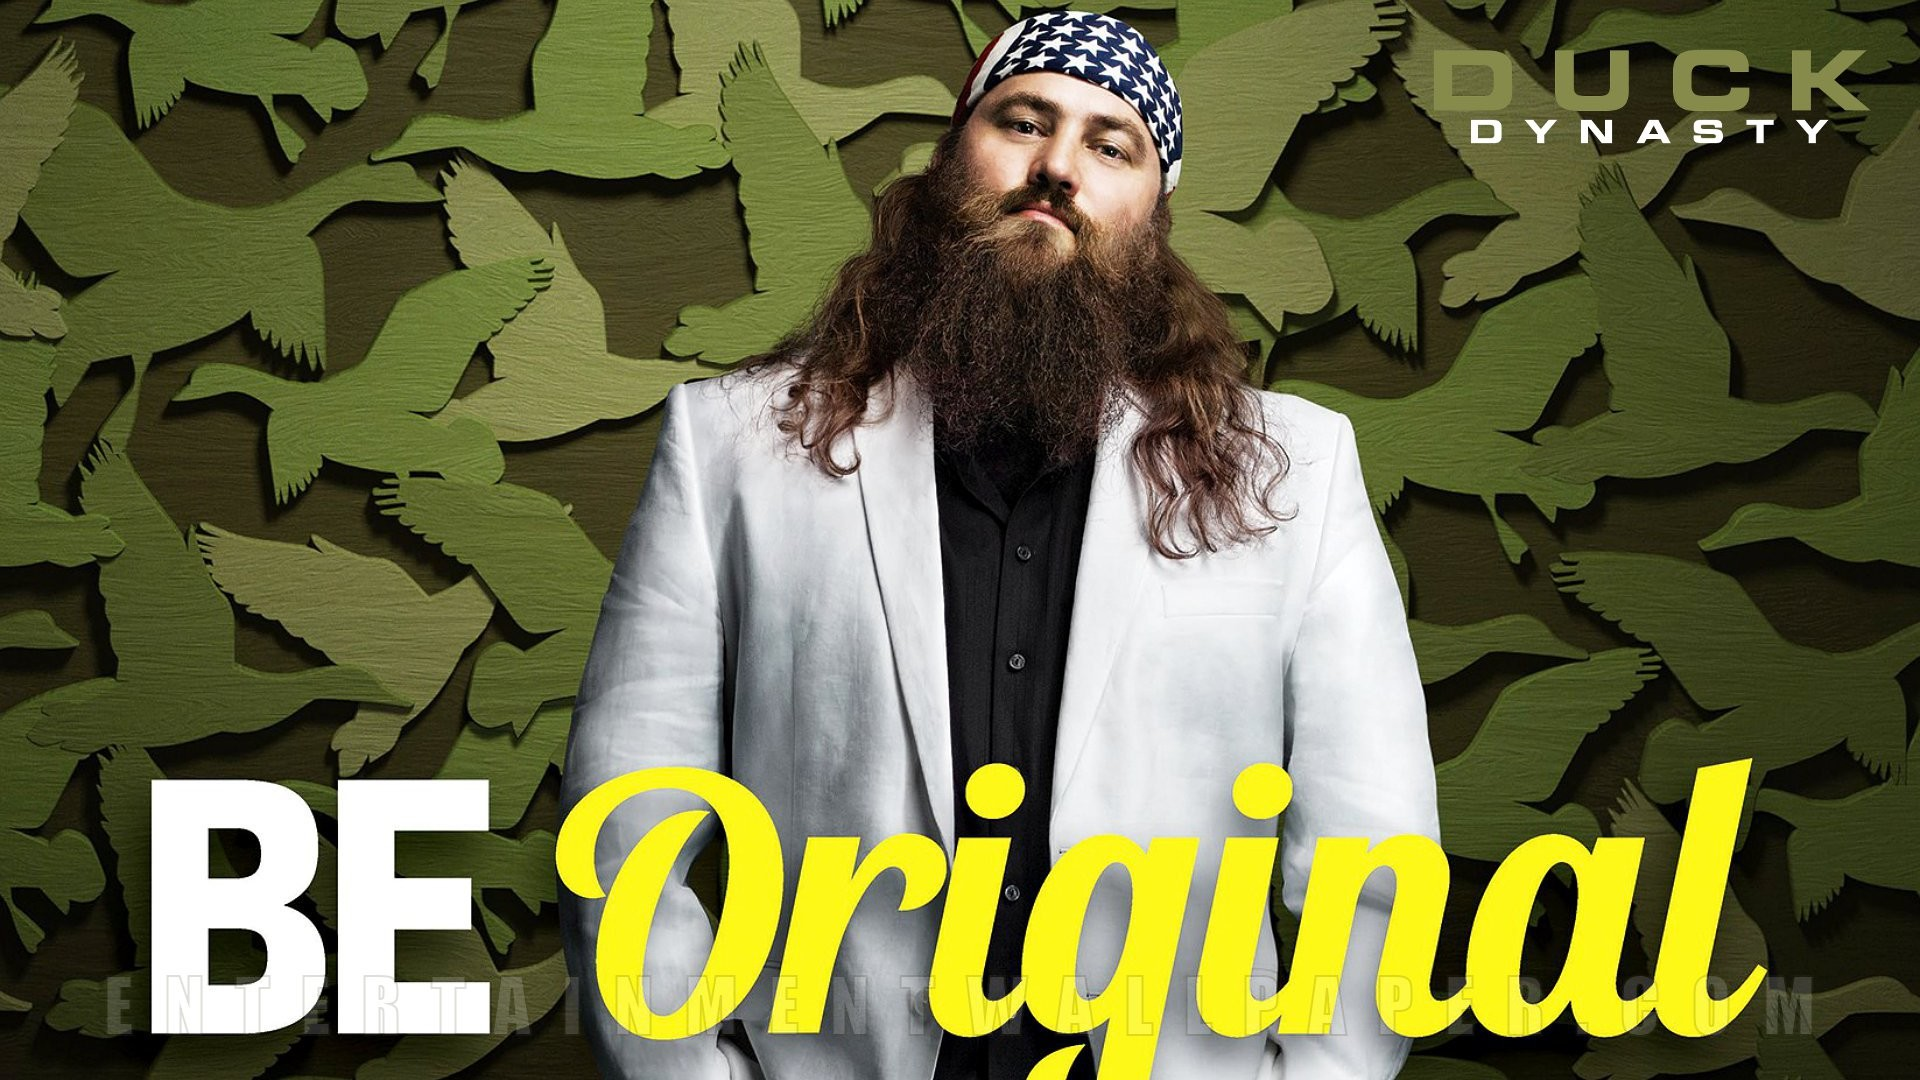 Duck Dynasty Wallpaper 20043367 Size More Duck Dynasty